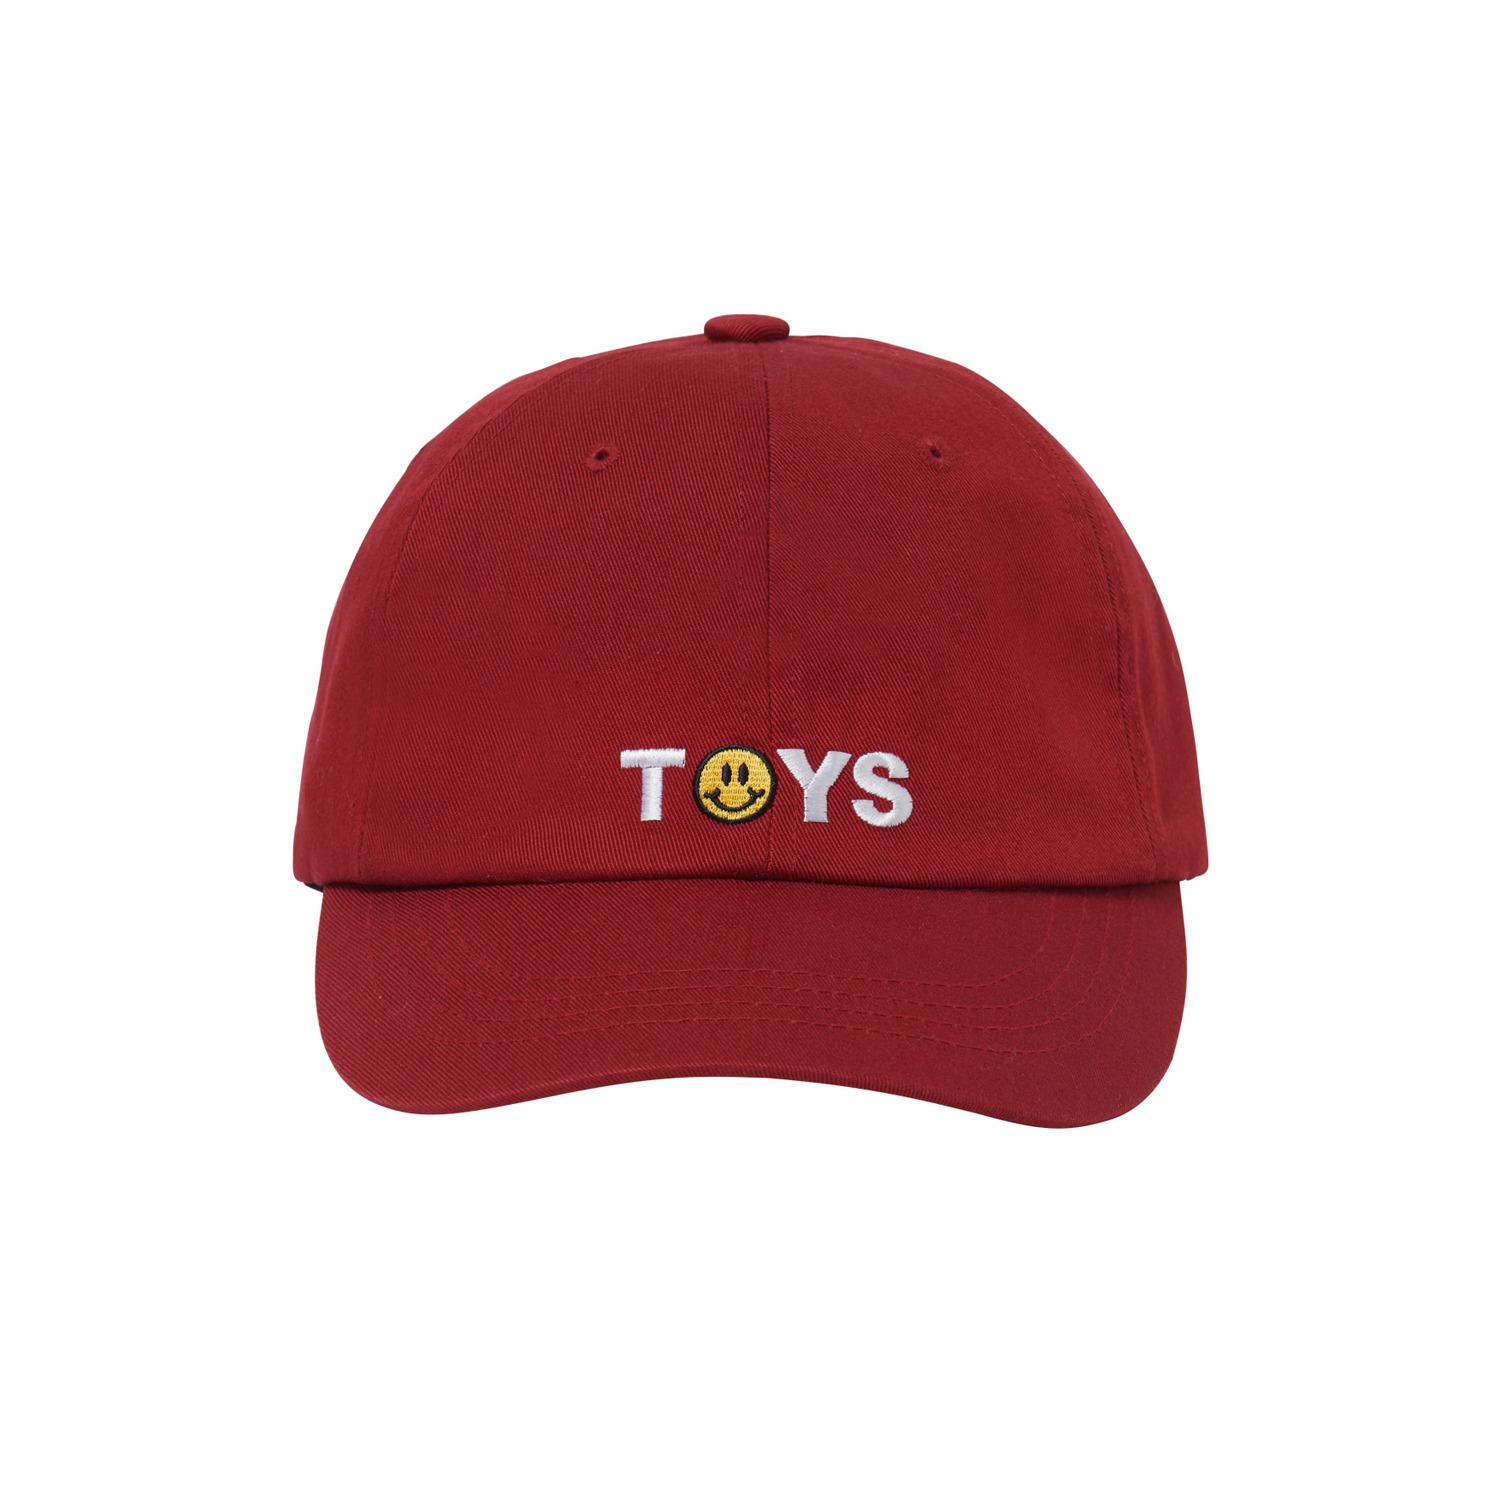 [54% OFF]TOYS BALL CAP(RED)